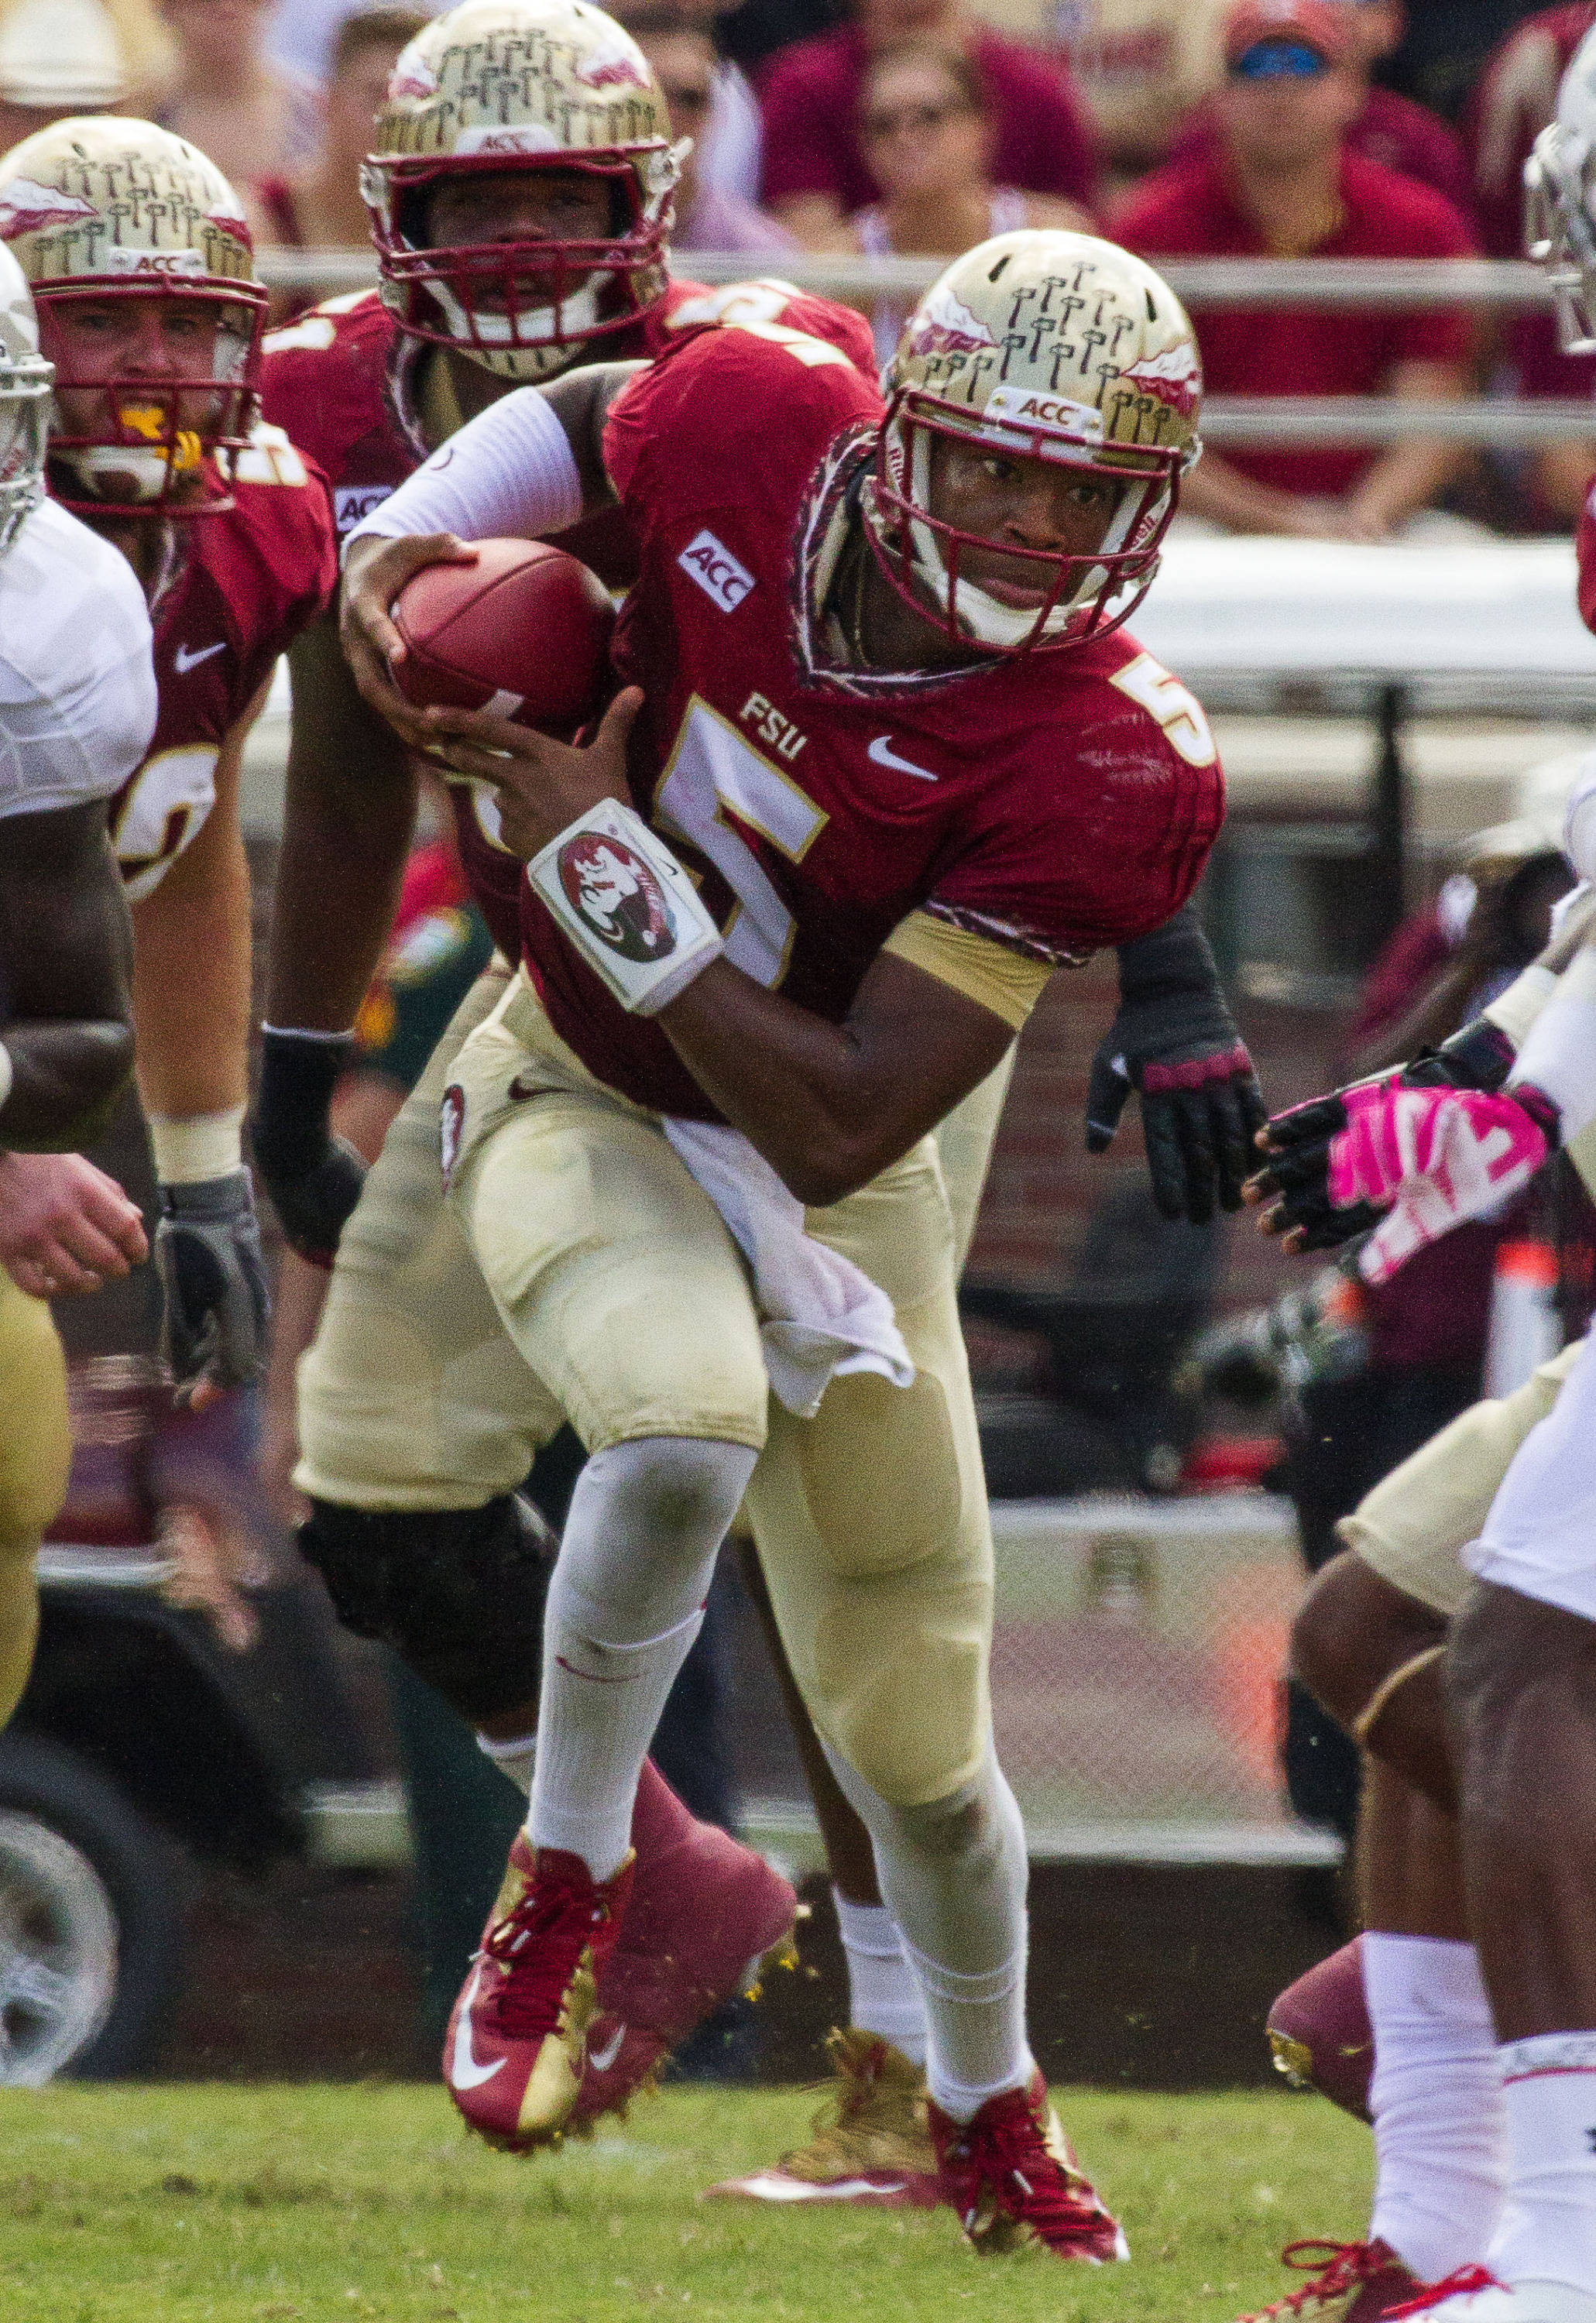 Jameis Winston (5) carries the ball during FSU Football's 63-0 shutout of Maryland on Saturday, October 5, 2013 in Tallahassee, Fla.